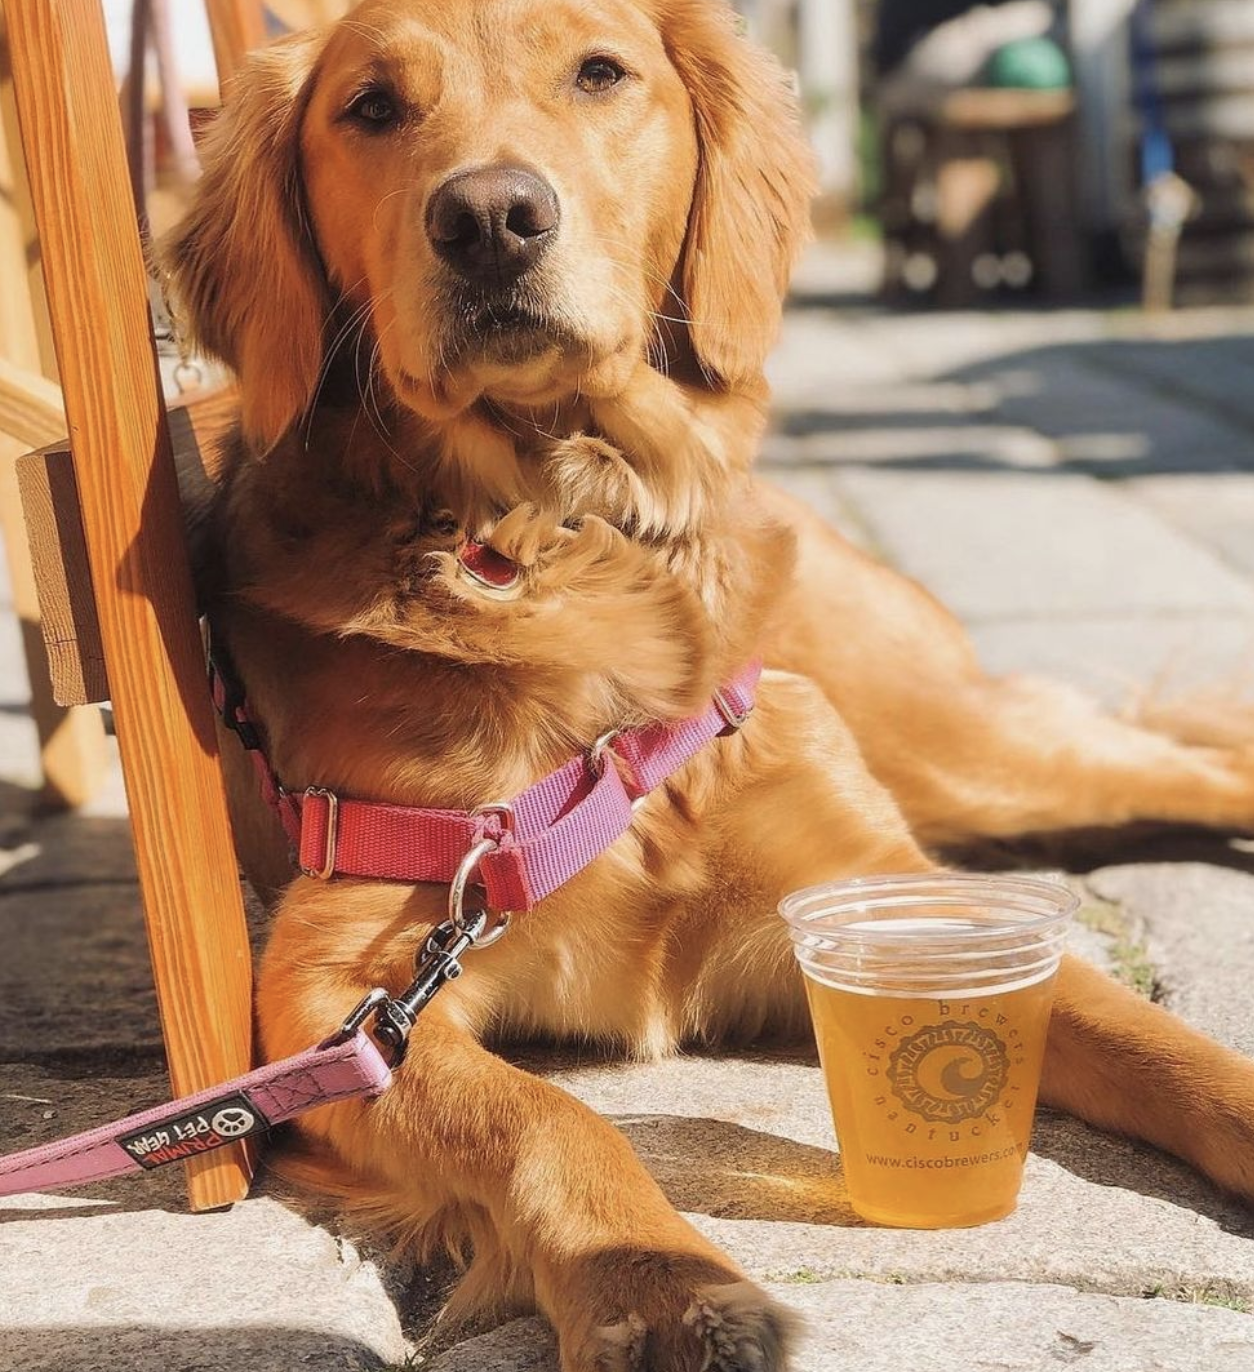 Dog next to a Cisco beer